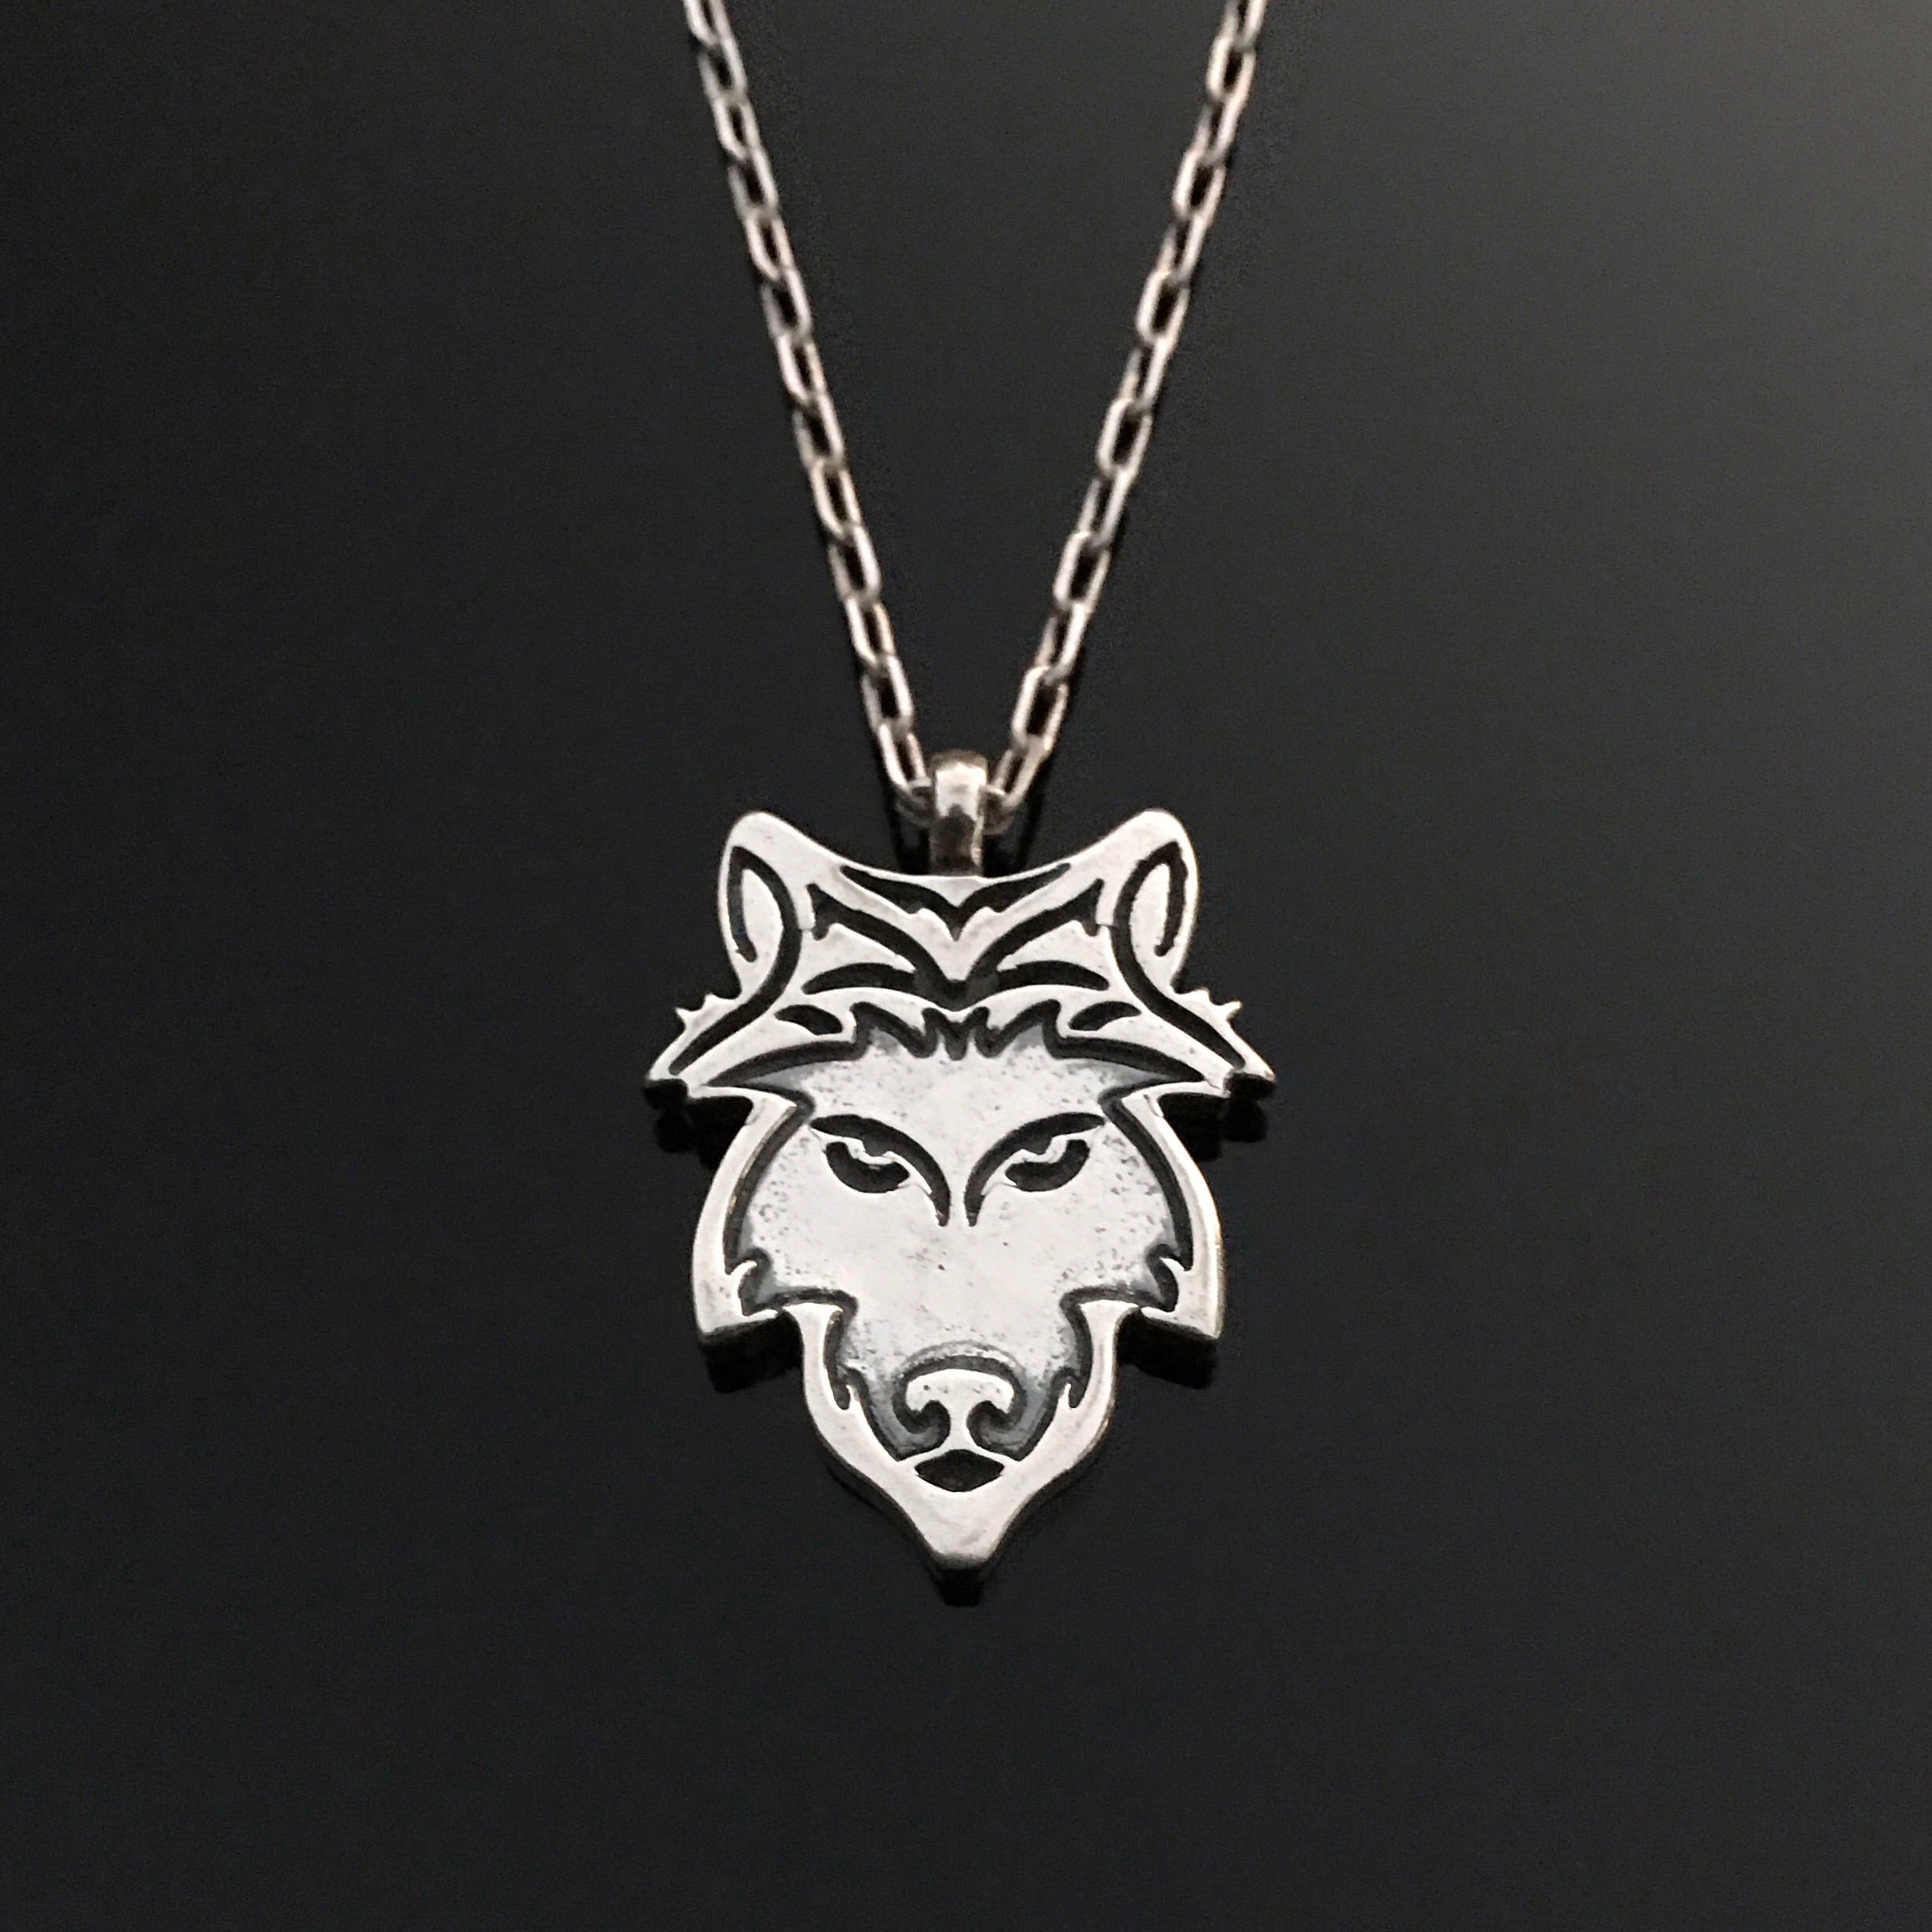 necklace wolf chain head merch viking kings products with pendant heads